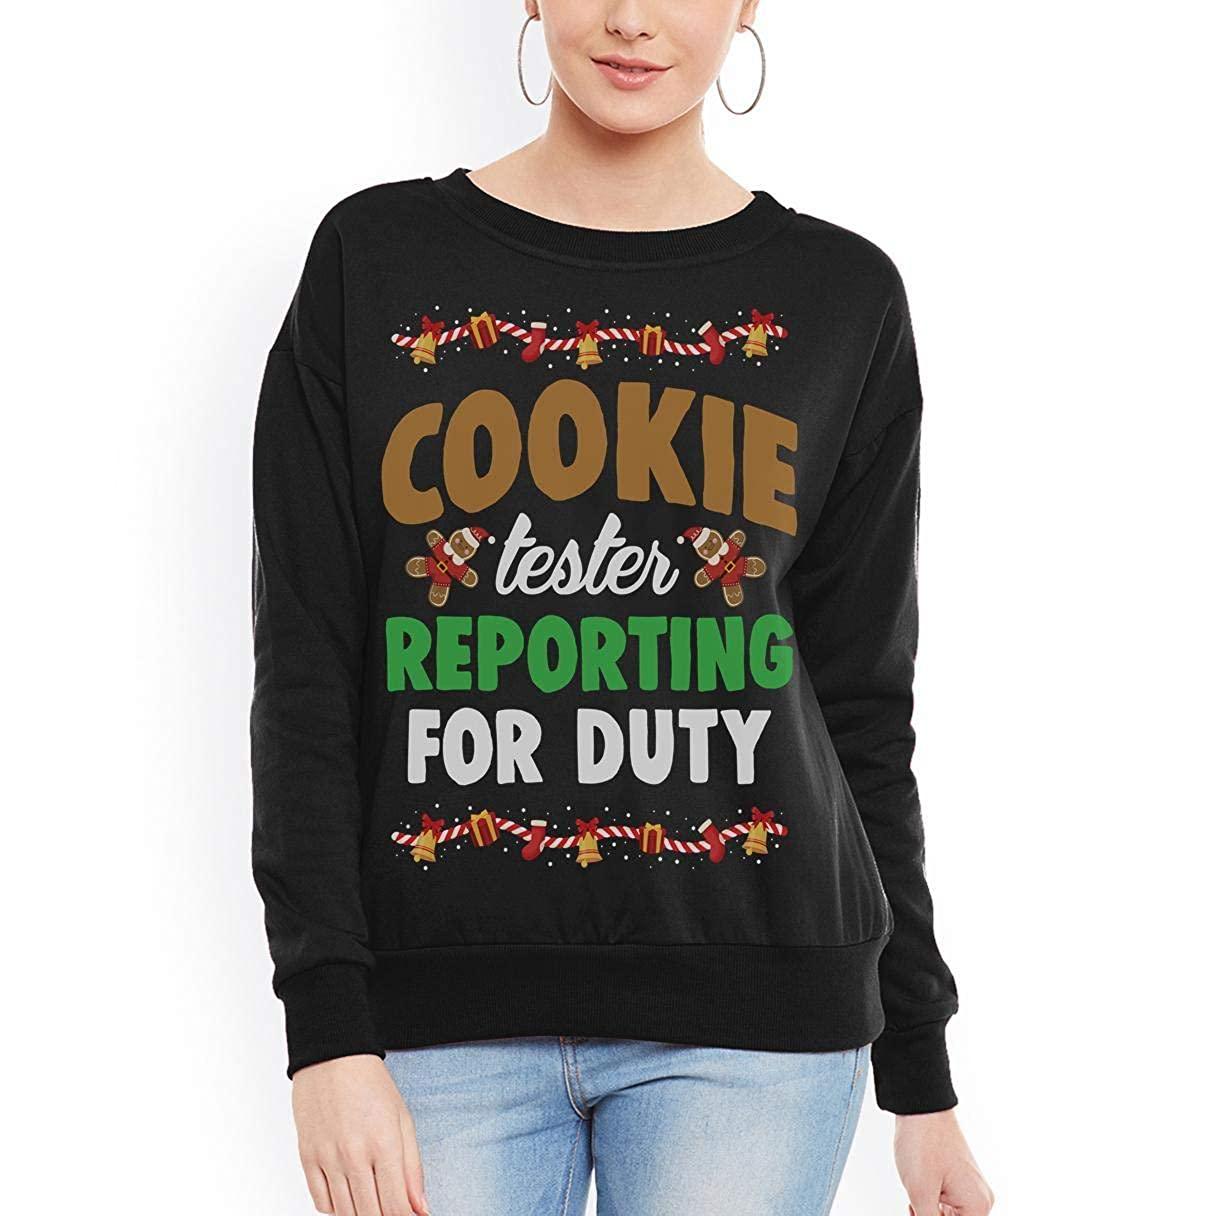 tee Cookie Tester Reporting for Duty Christmas Unisex Sweatshirt